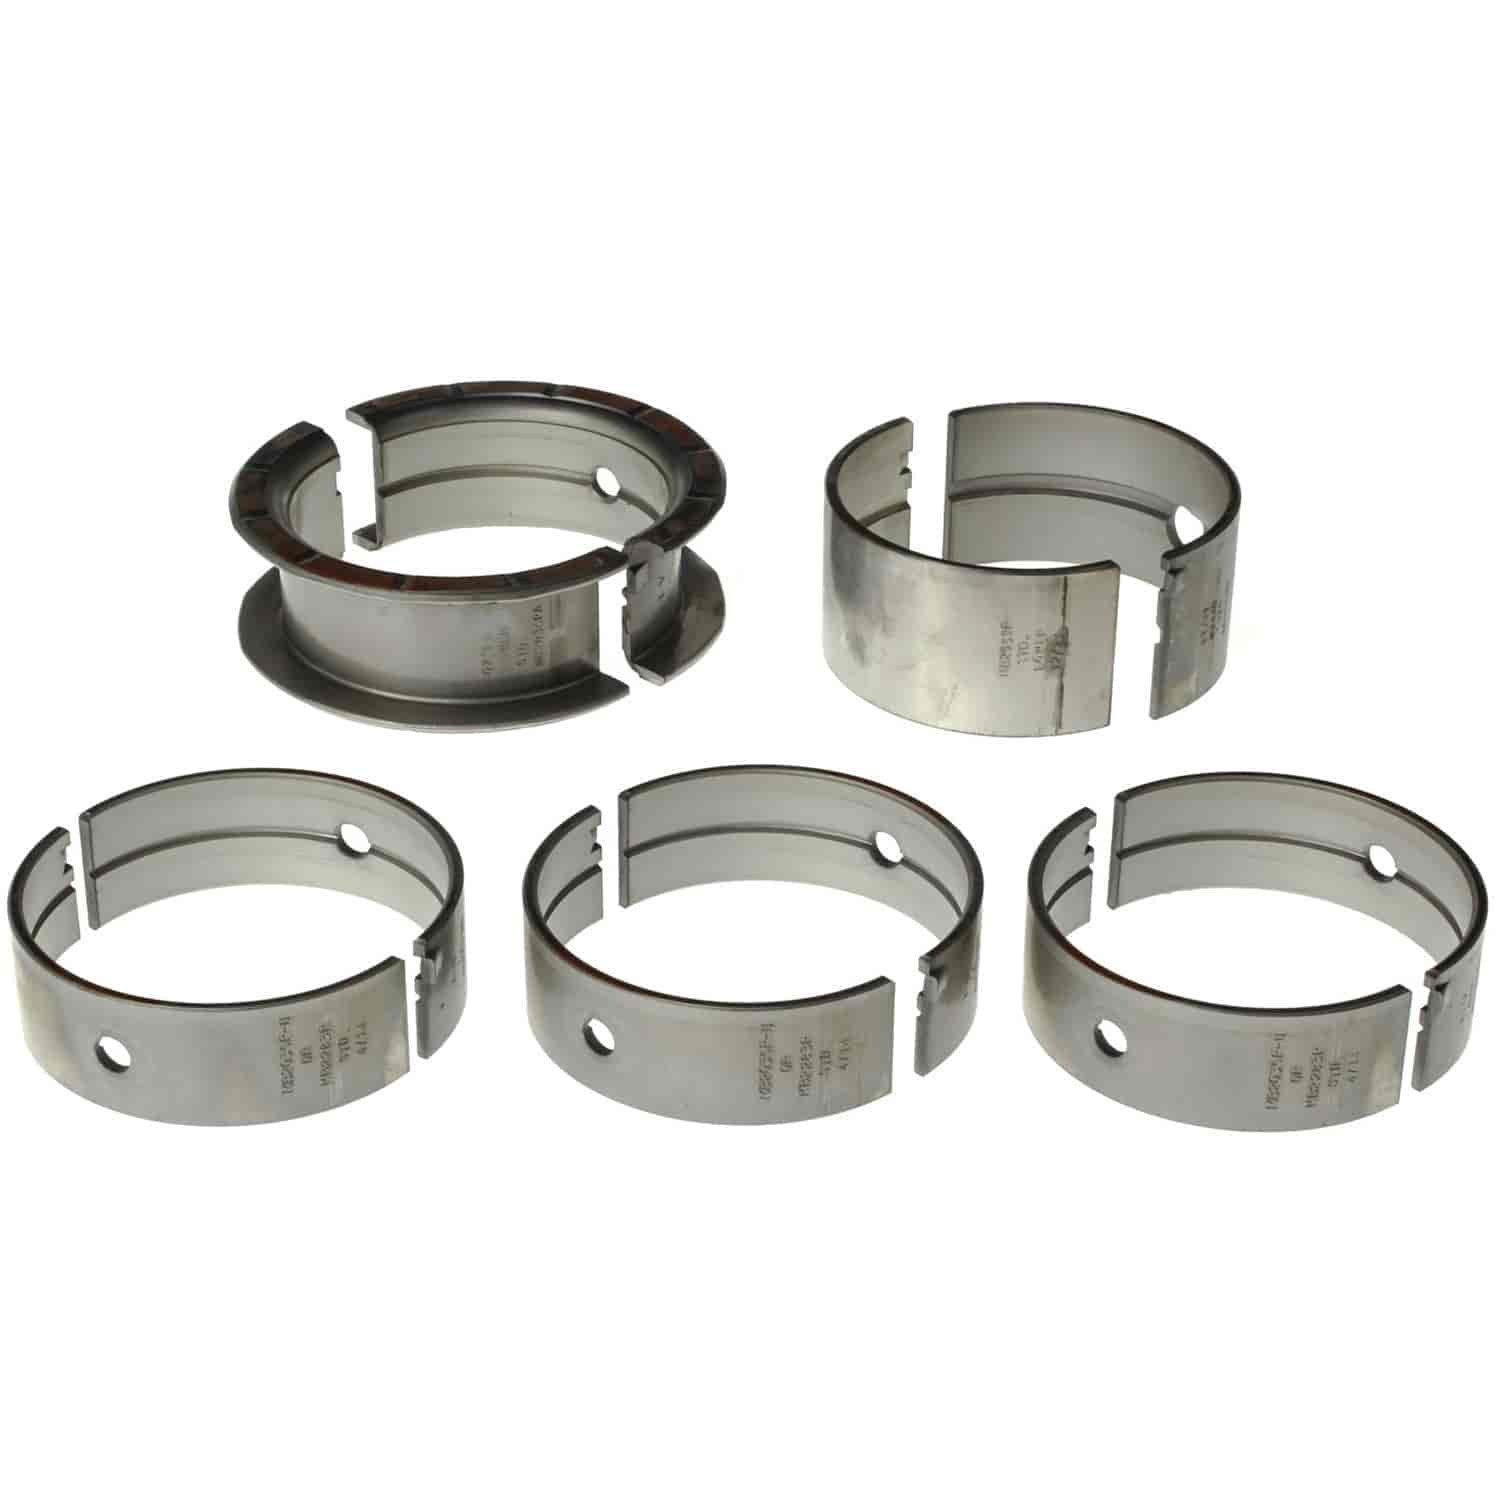 Clevite MS963P - Clevite 77 Chrysler High-Performance Bearings